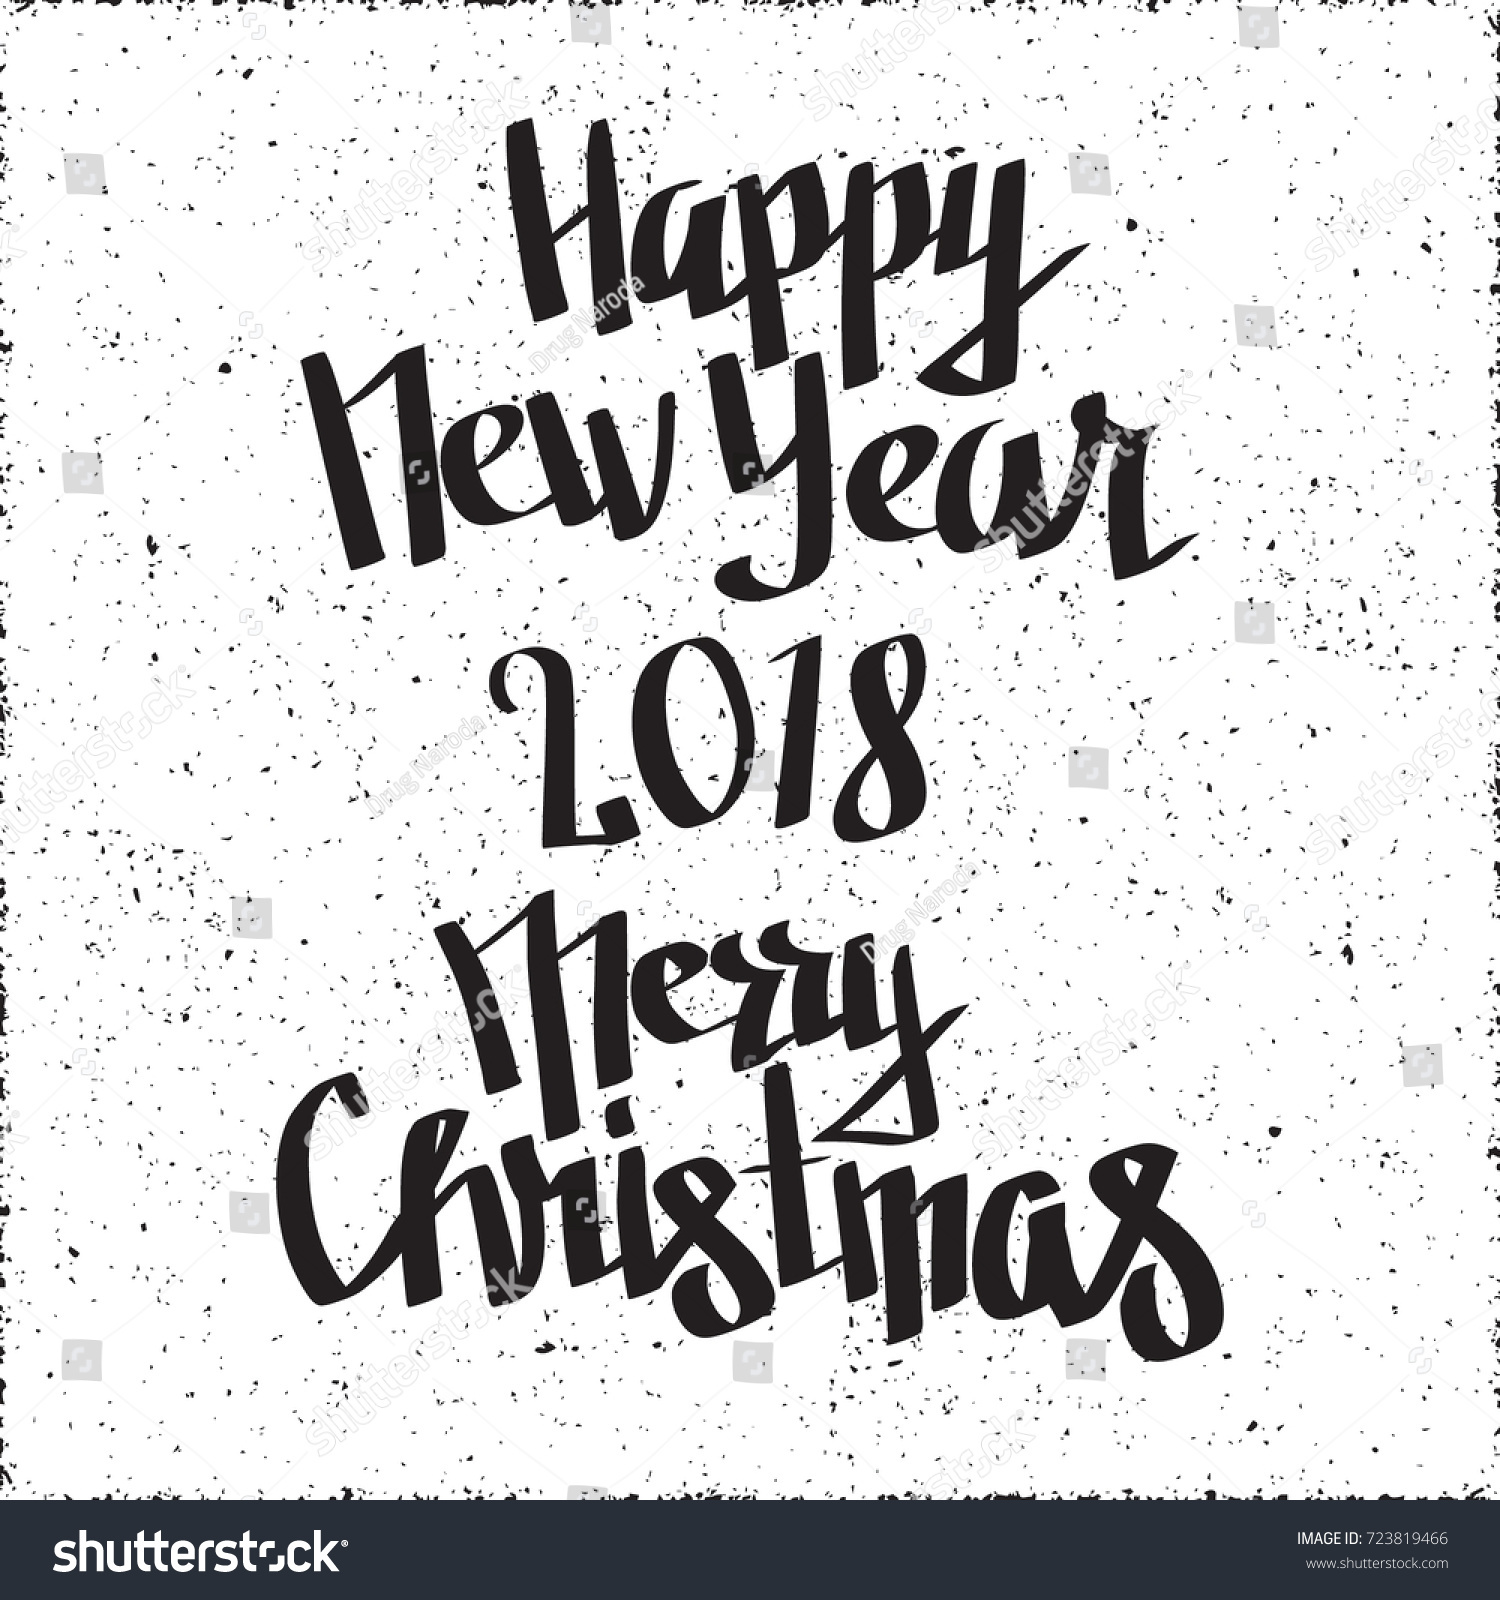 Christmas Graffiti Background.Happy New Year 2018 Merry Christmas Stock Vector Royalty